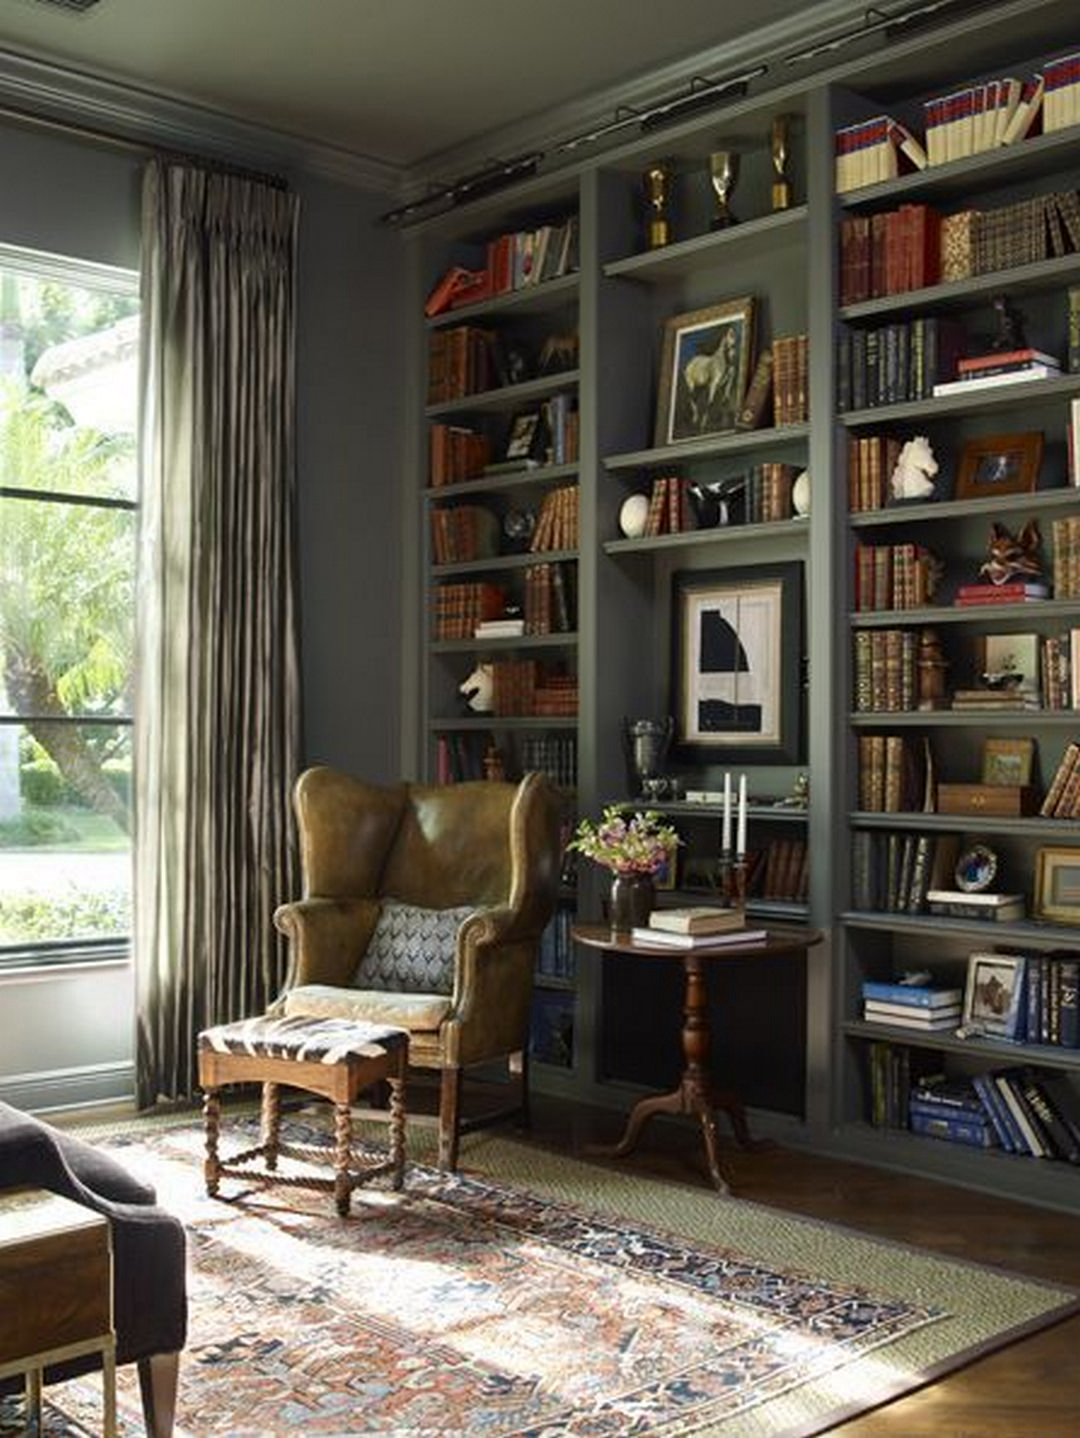 Home Library Design: 16 Homemade Interior Design Ideas